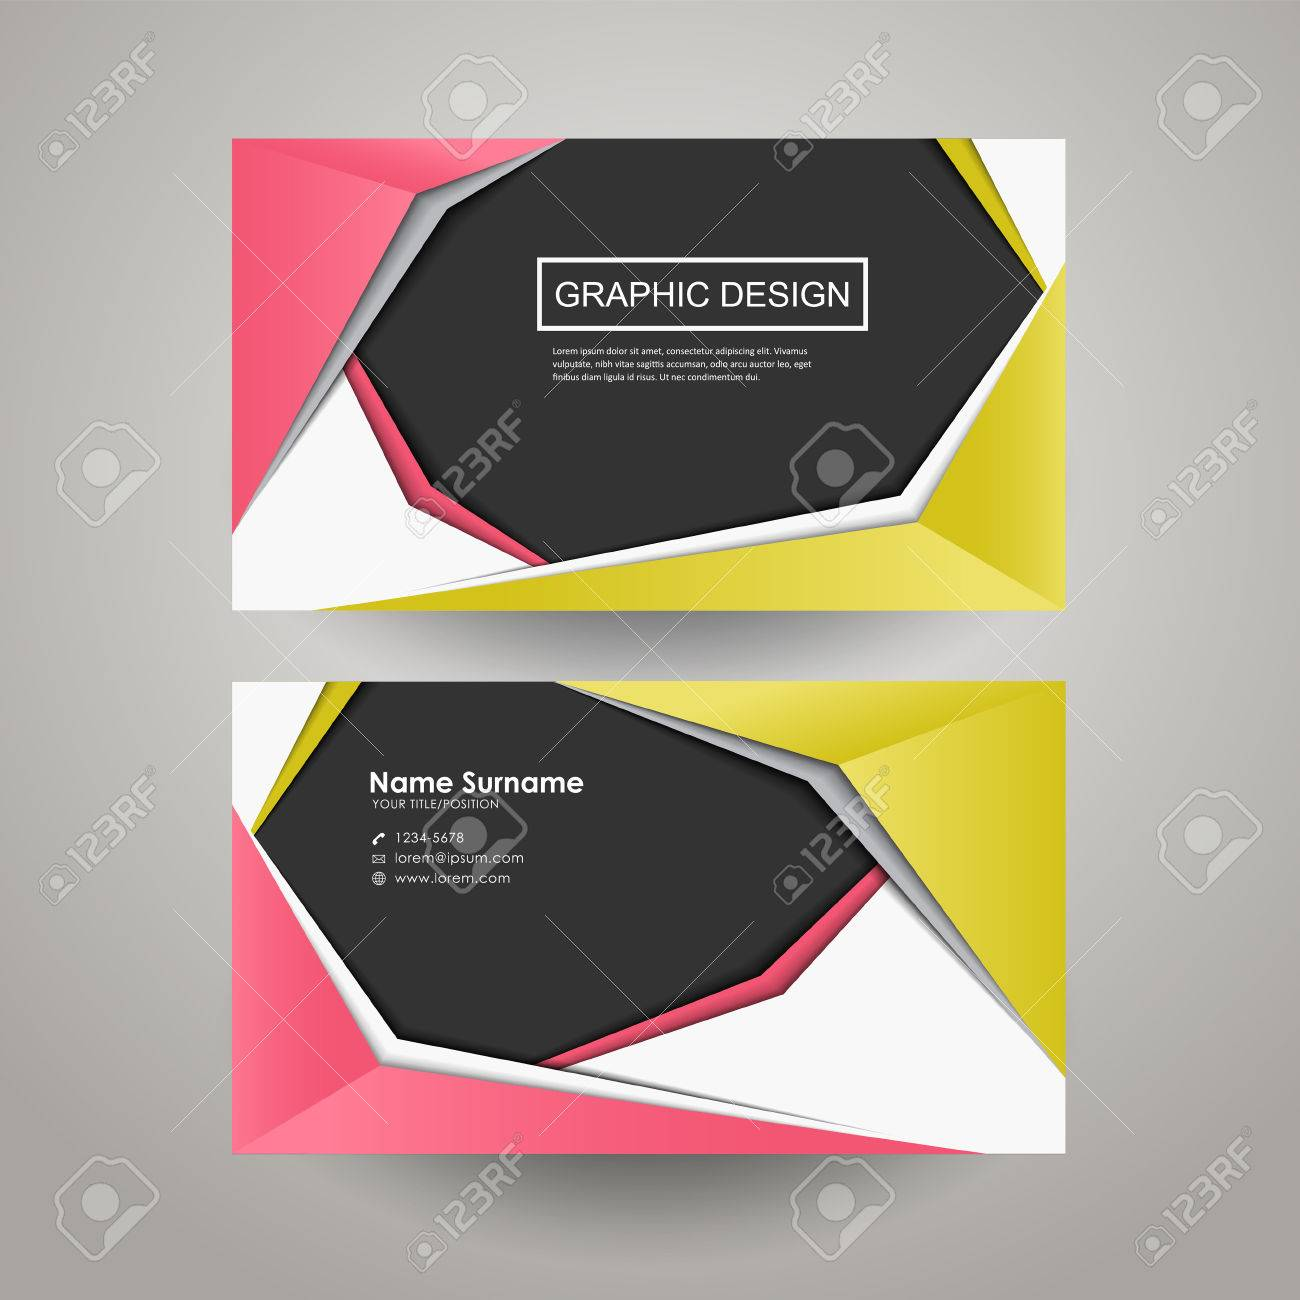 Modern paper style design for business card template royalty free modern paper style design for business card template stock vector 32856318 colourmoves